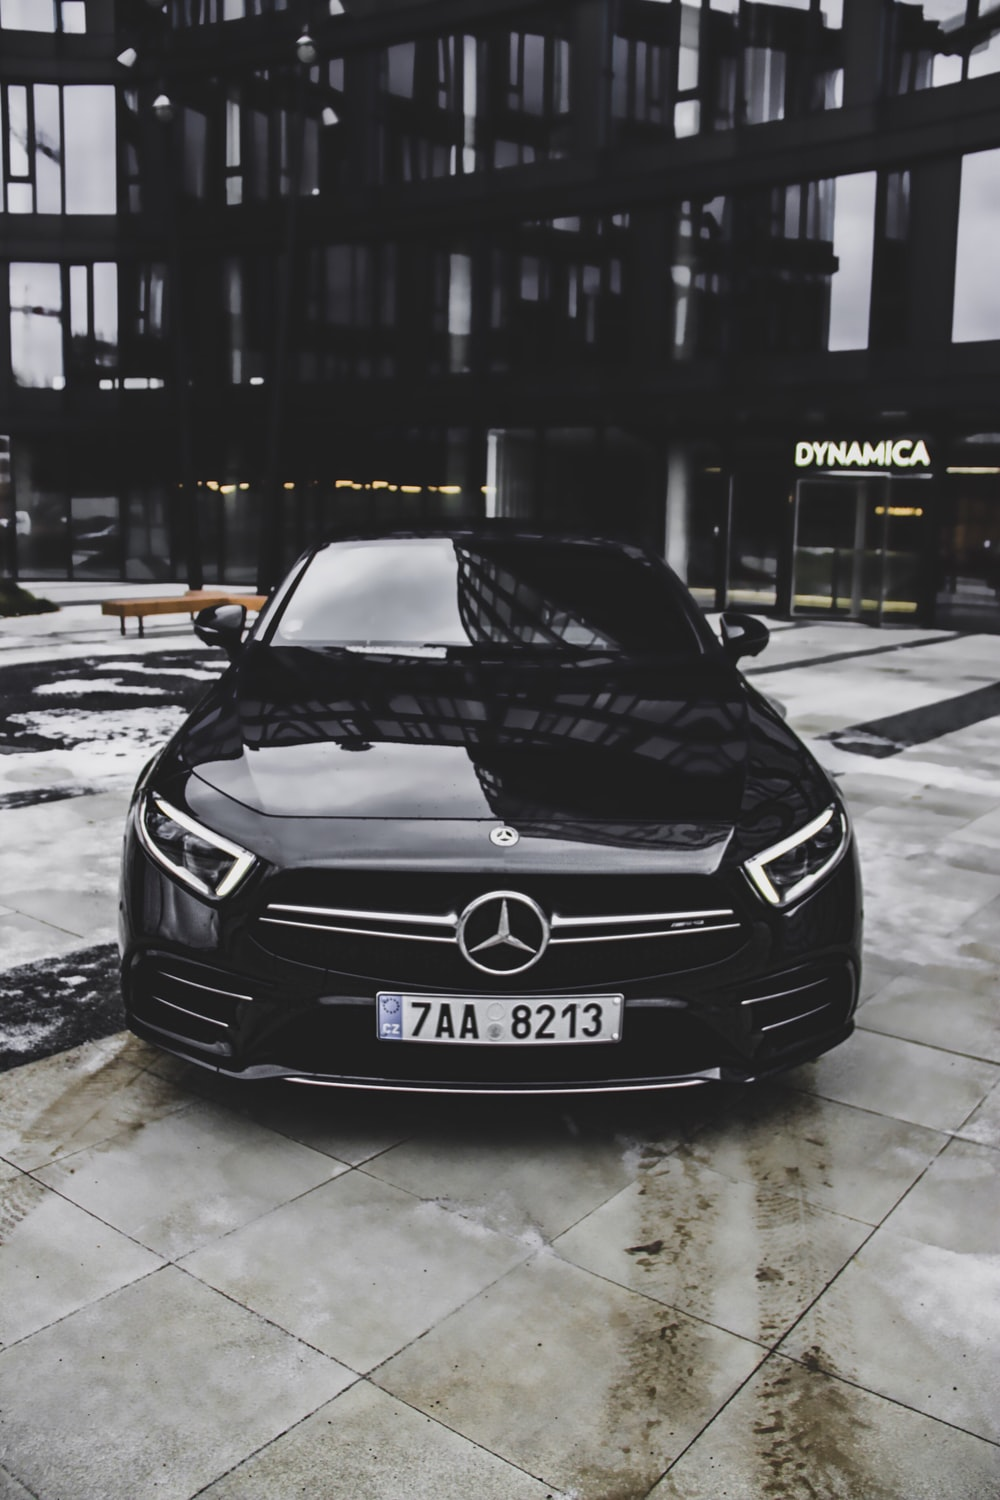 black Mercedes-Benz vehicle parked outside Dynamica building